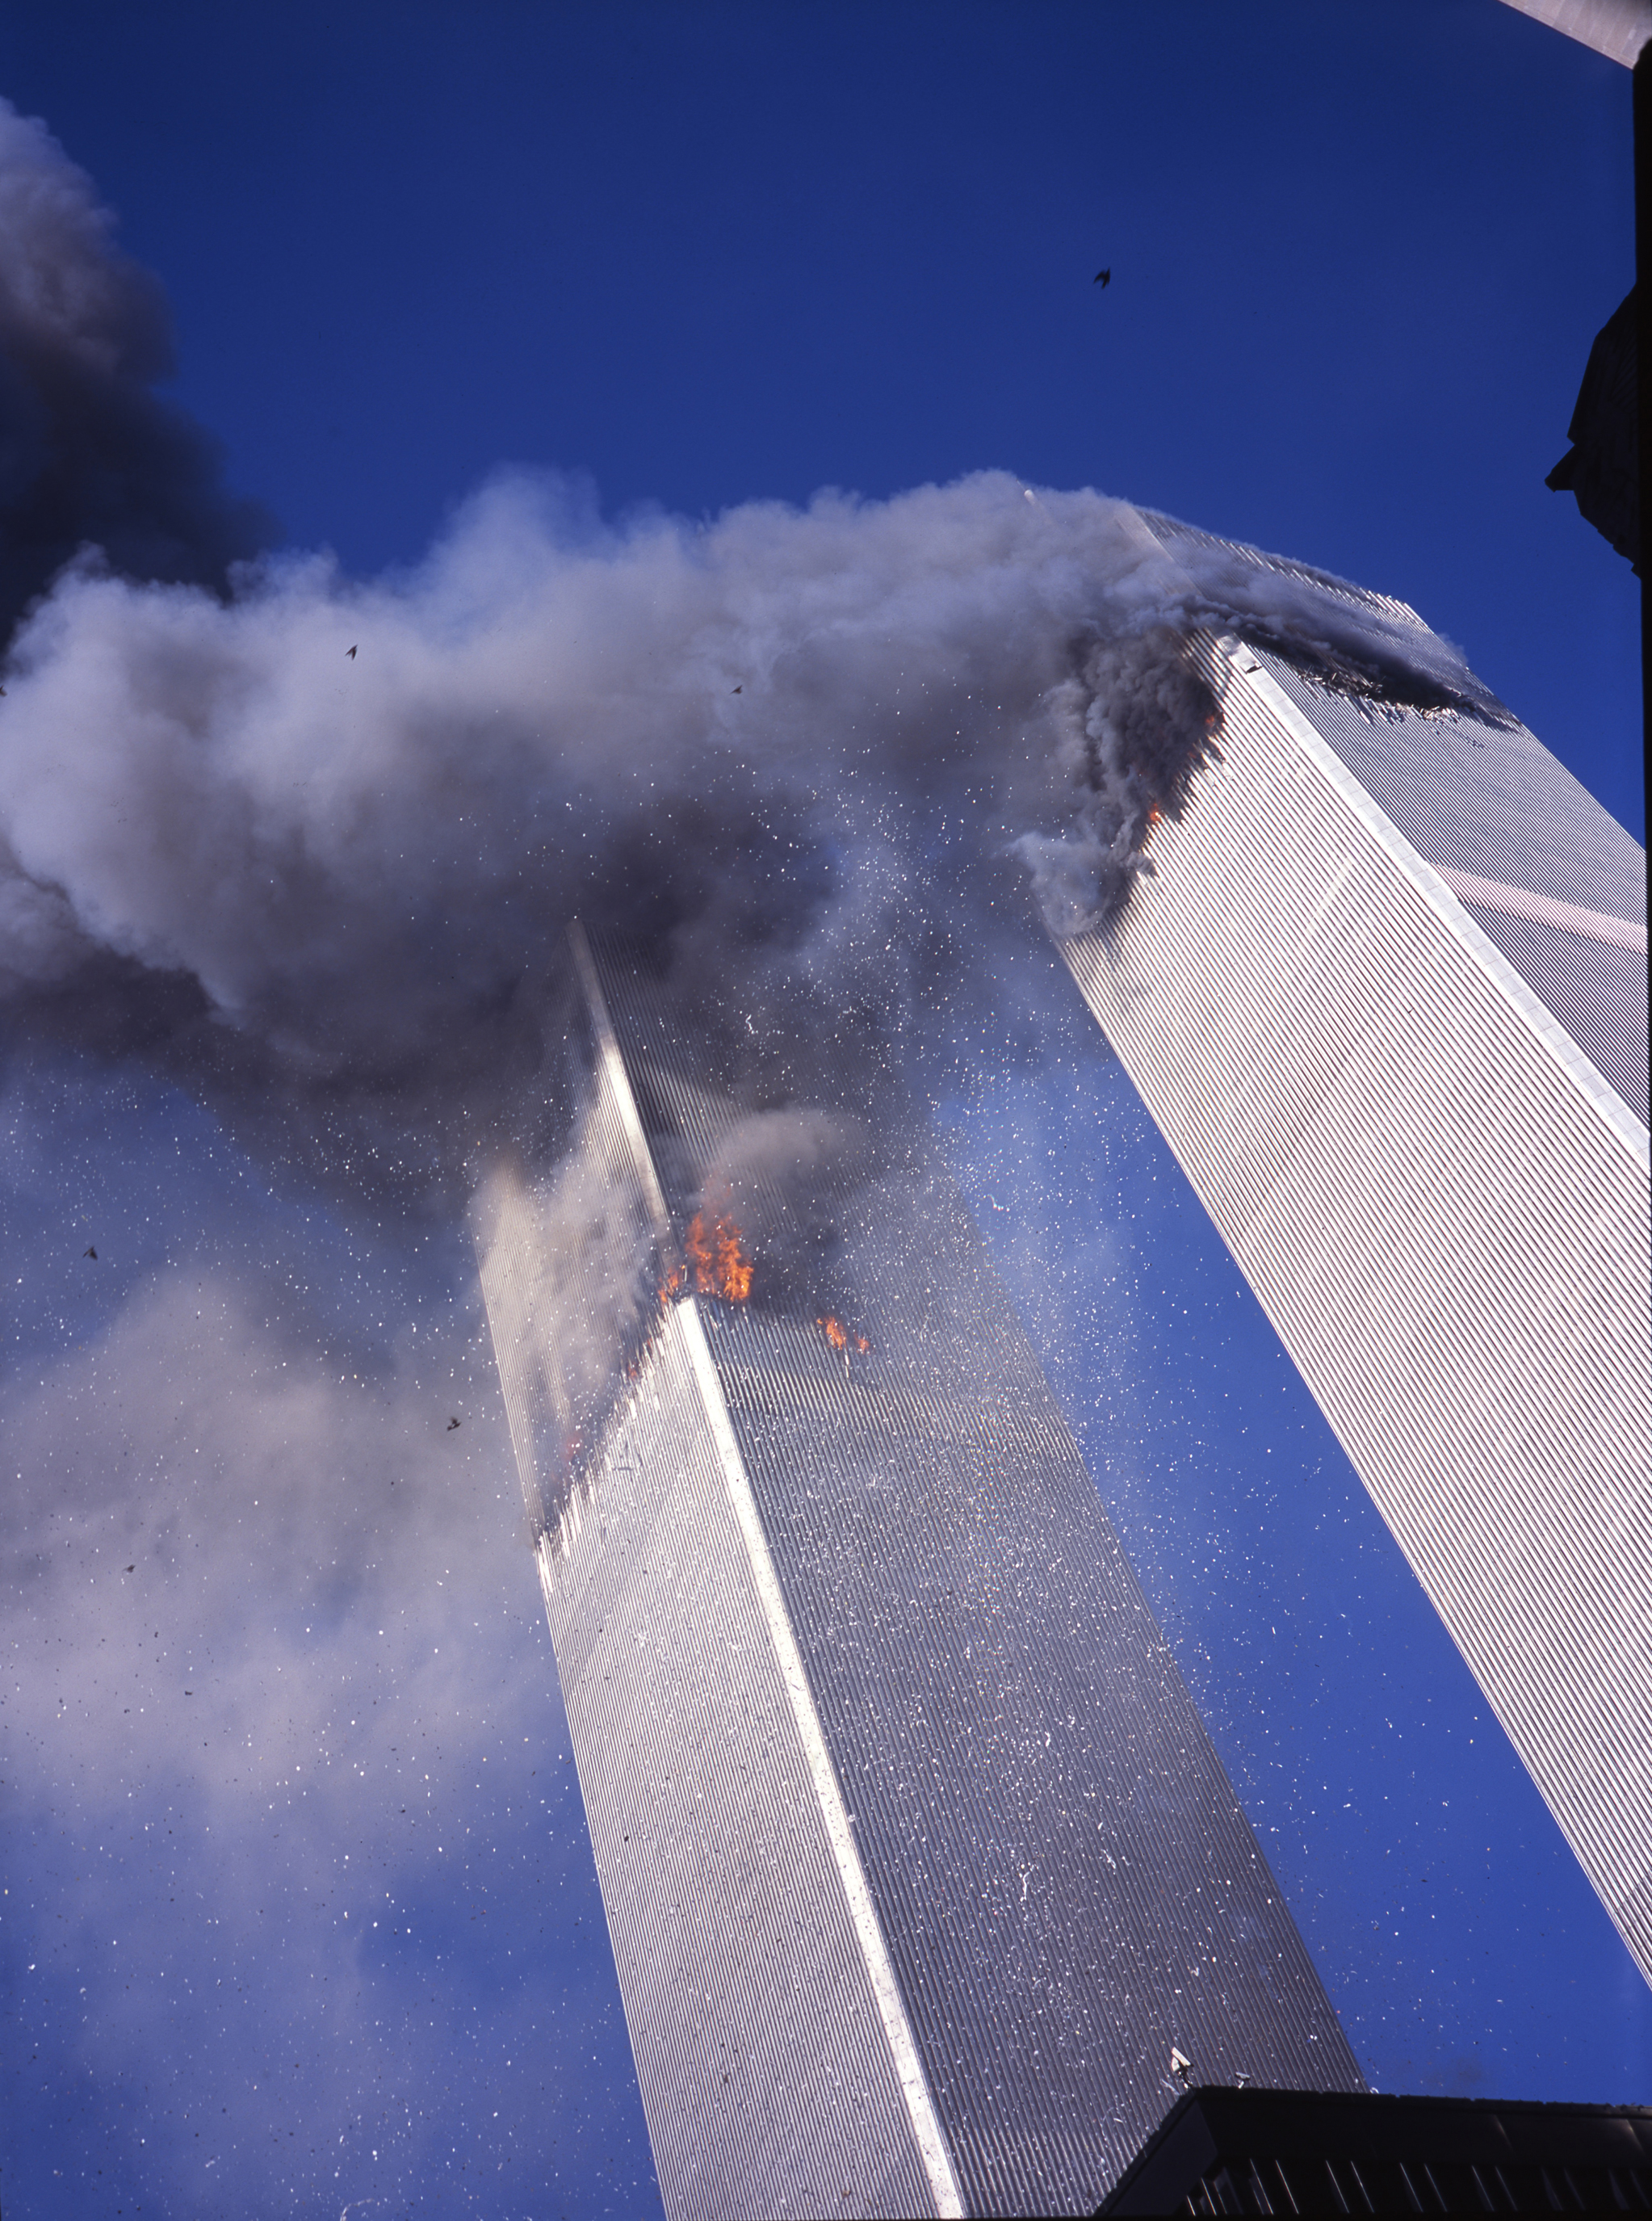 The second of two frames made by Lyle Owerko immediately after the second plane struck the South Tower of the World Trade Center, on Sept. 11, 2001.